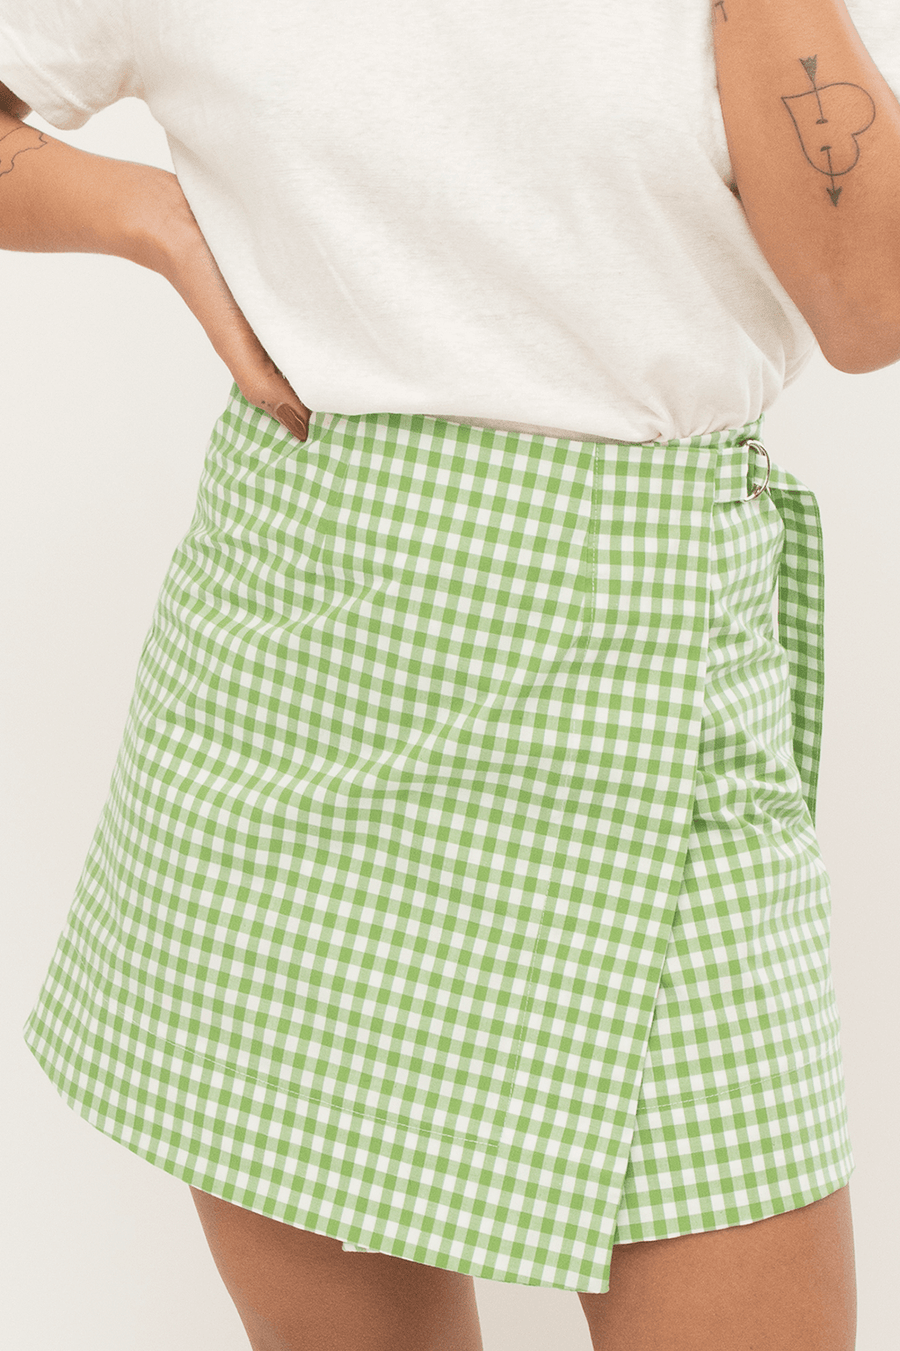 Wrap Skirt in Gingham Print